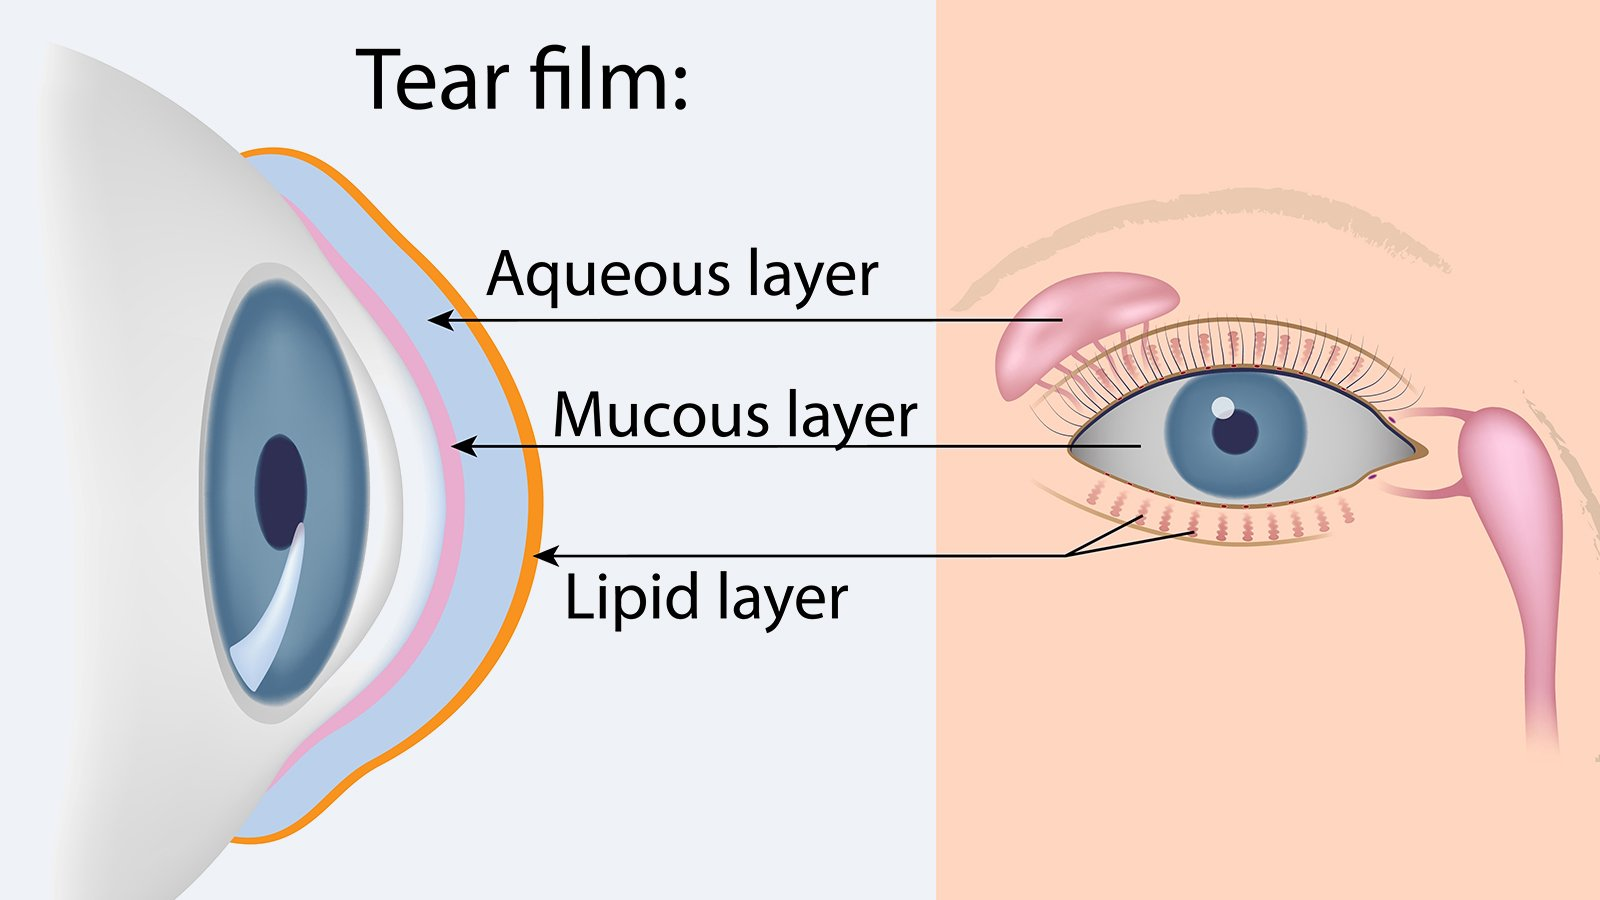 What is a tear film?